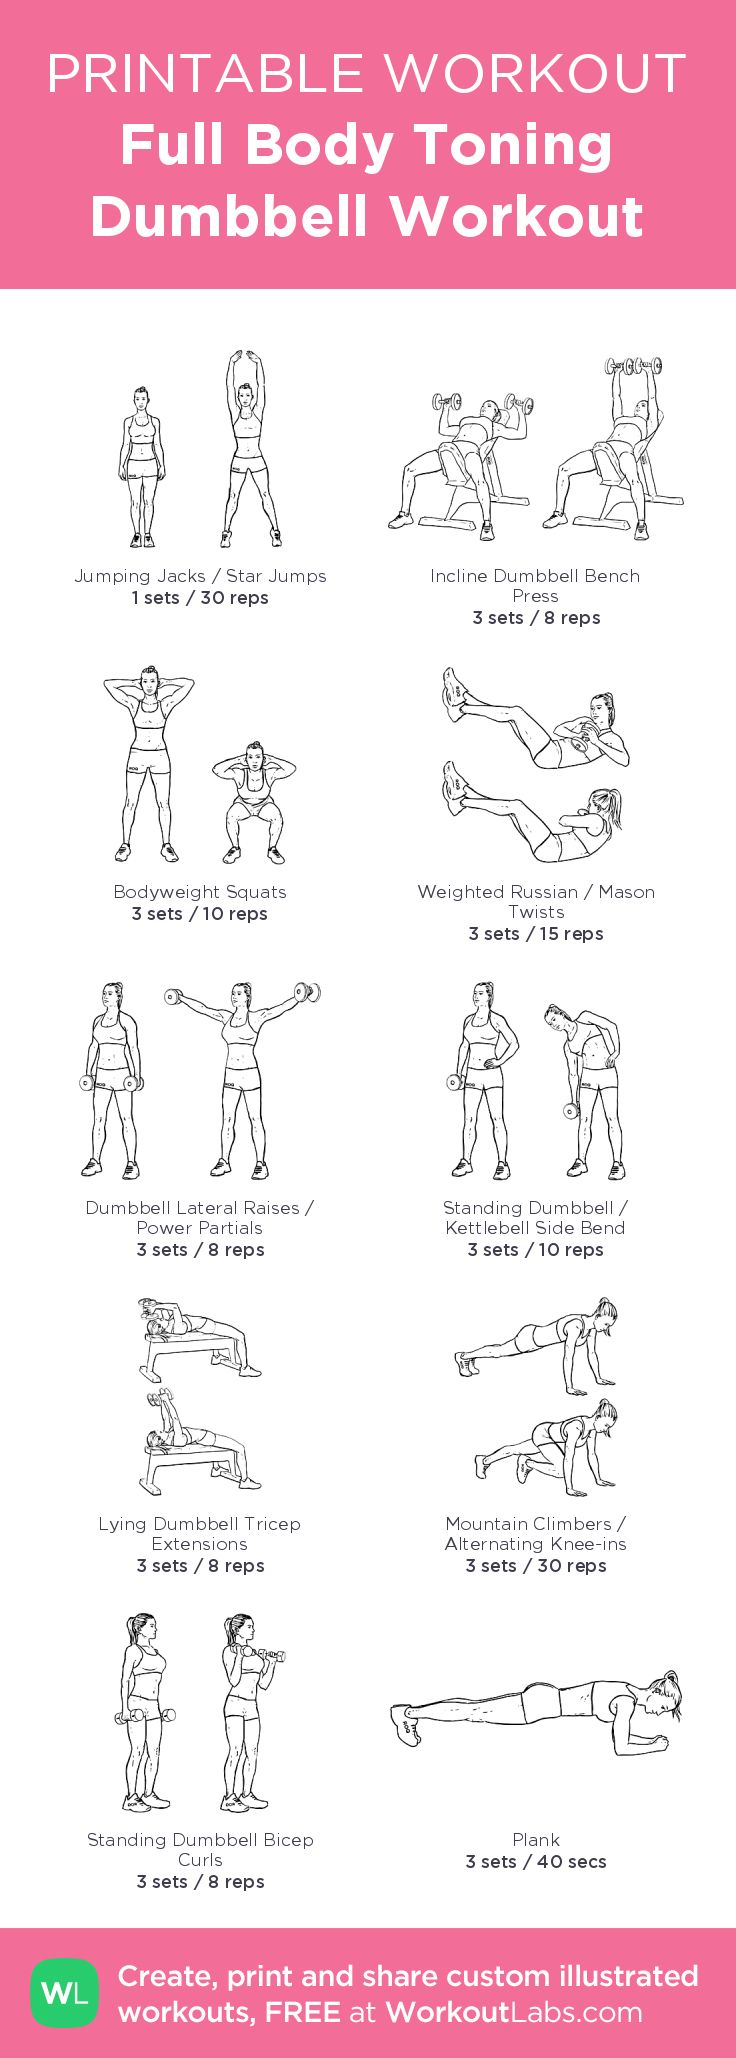 Full Body Toning Dumbbell Workout–my custom exercise plan created at WorkoutLabs.com • Click through to download as a printable workout PDF #customworkout